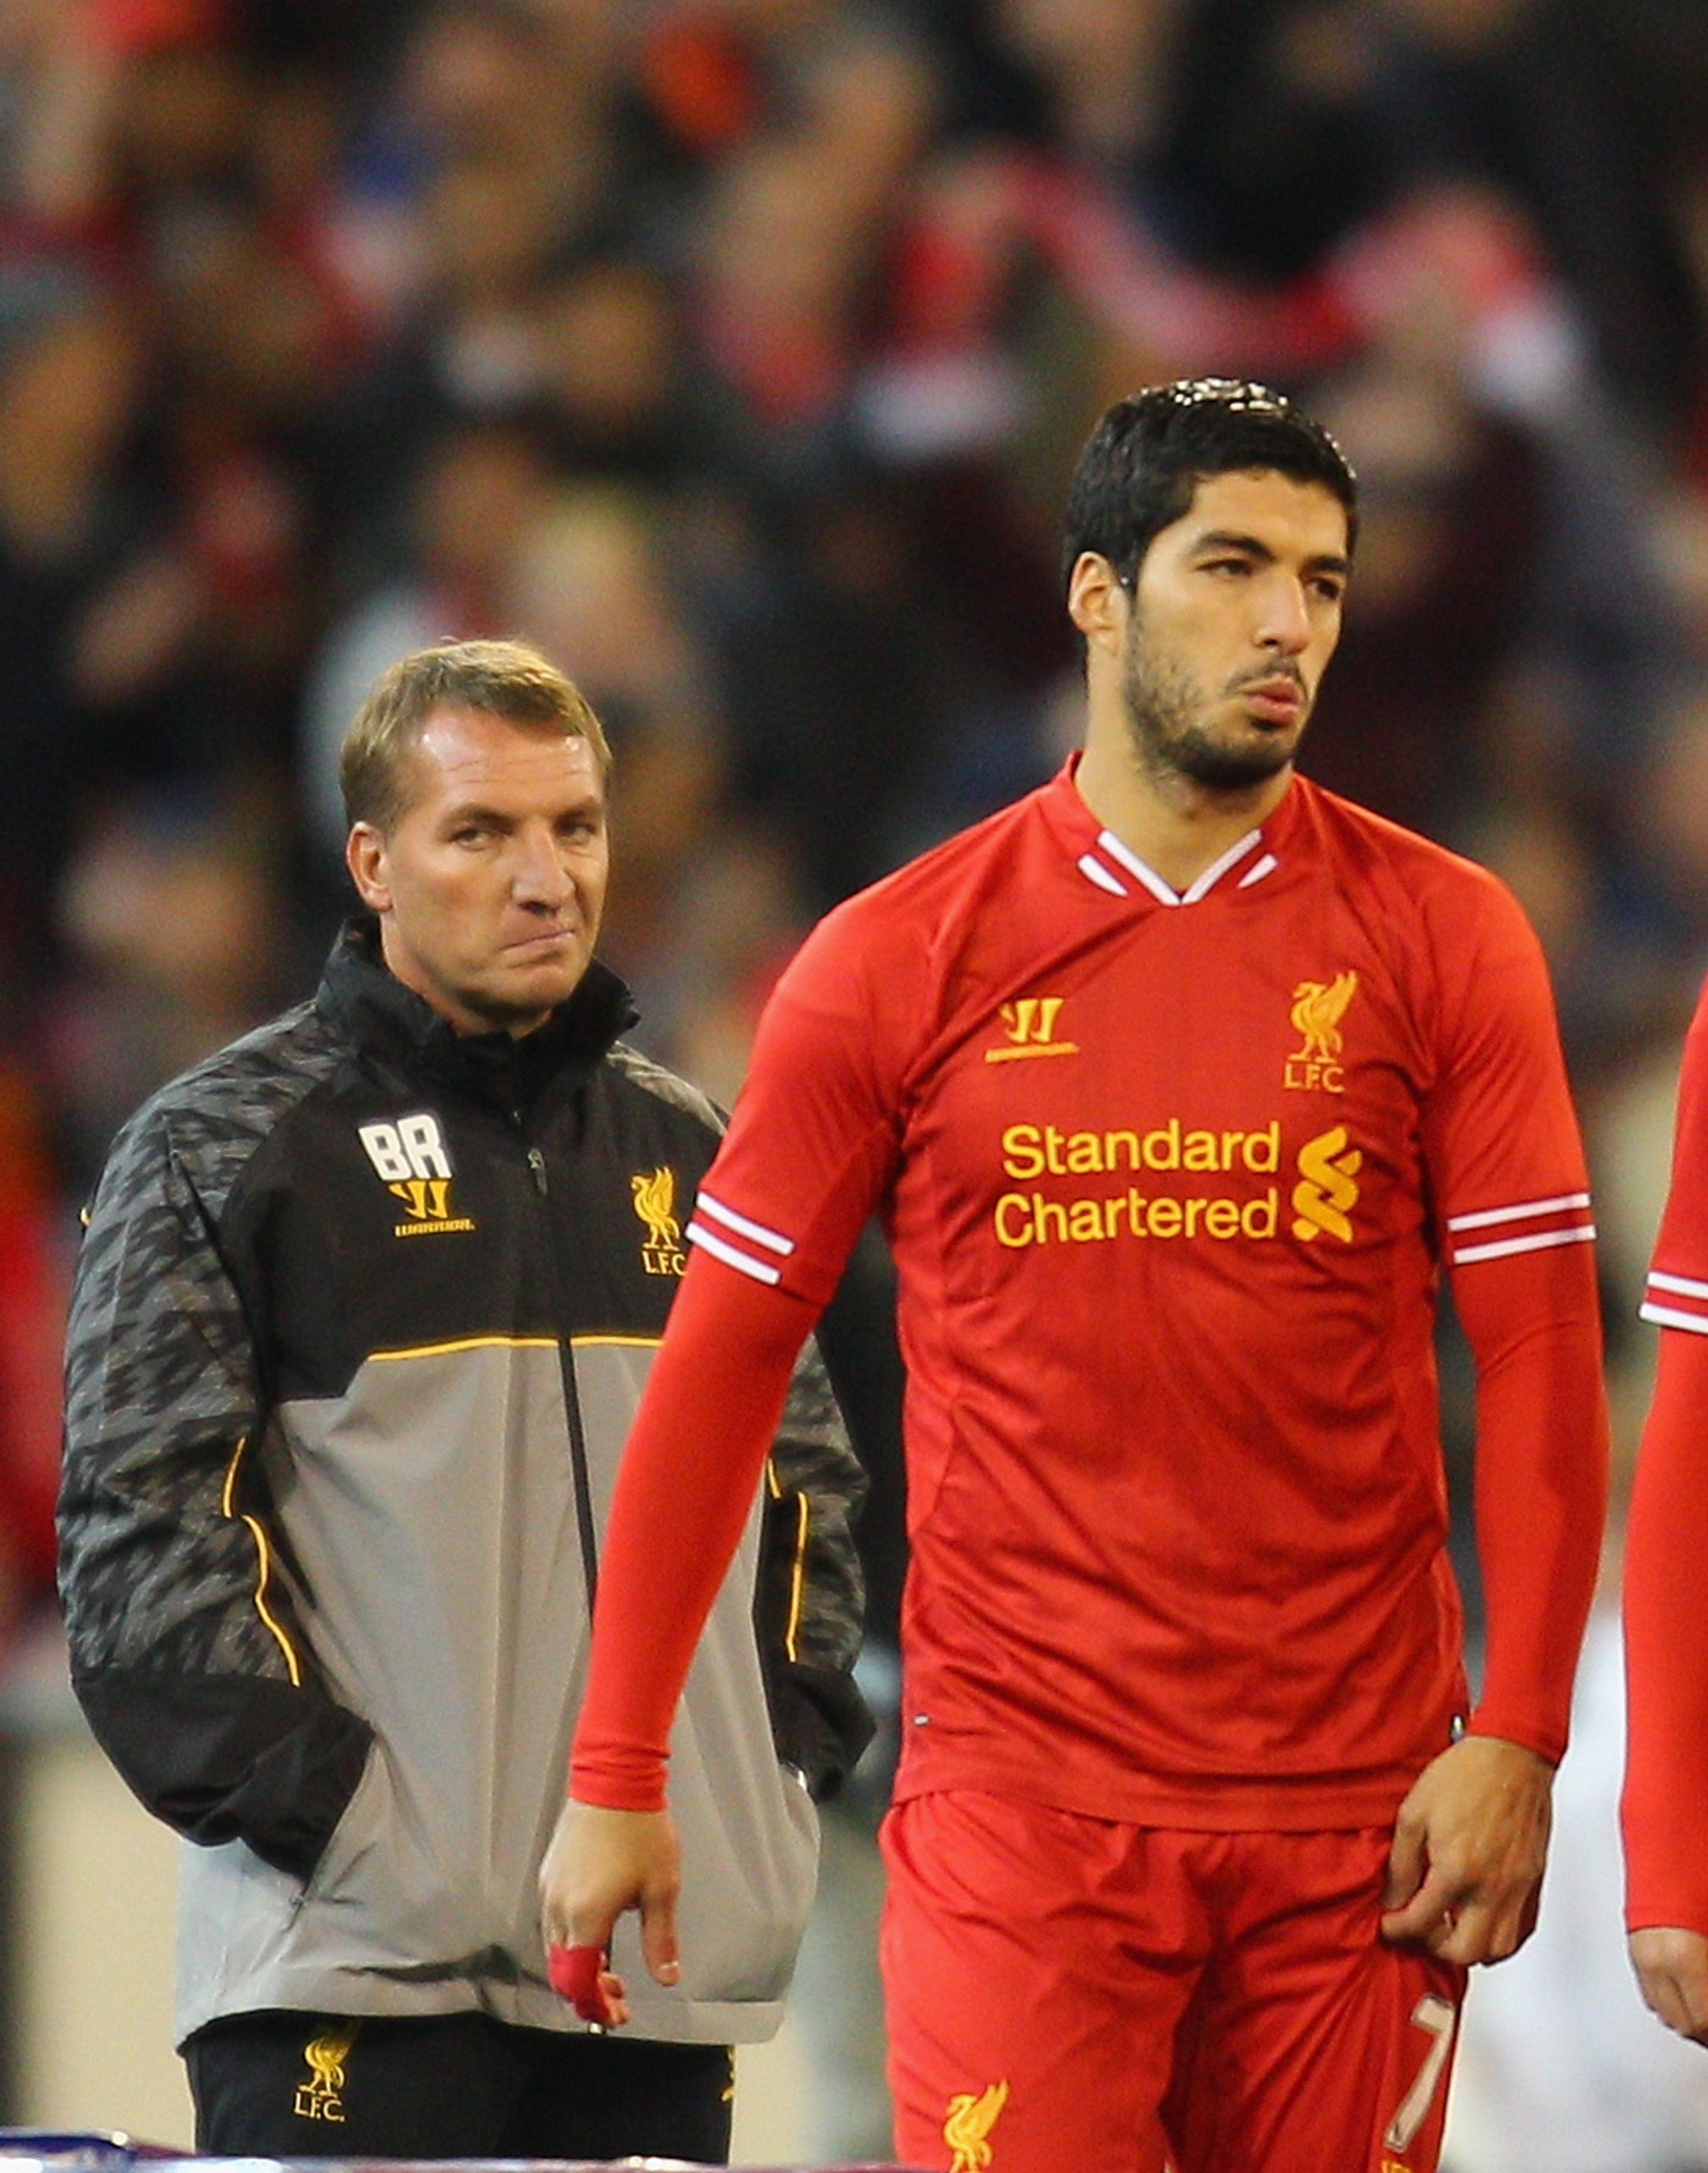 Luis Suarez says Liverpool promised he could leave, contract includes release clause